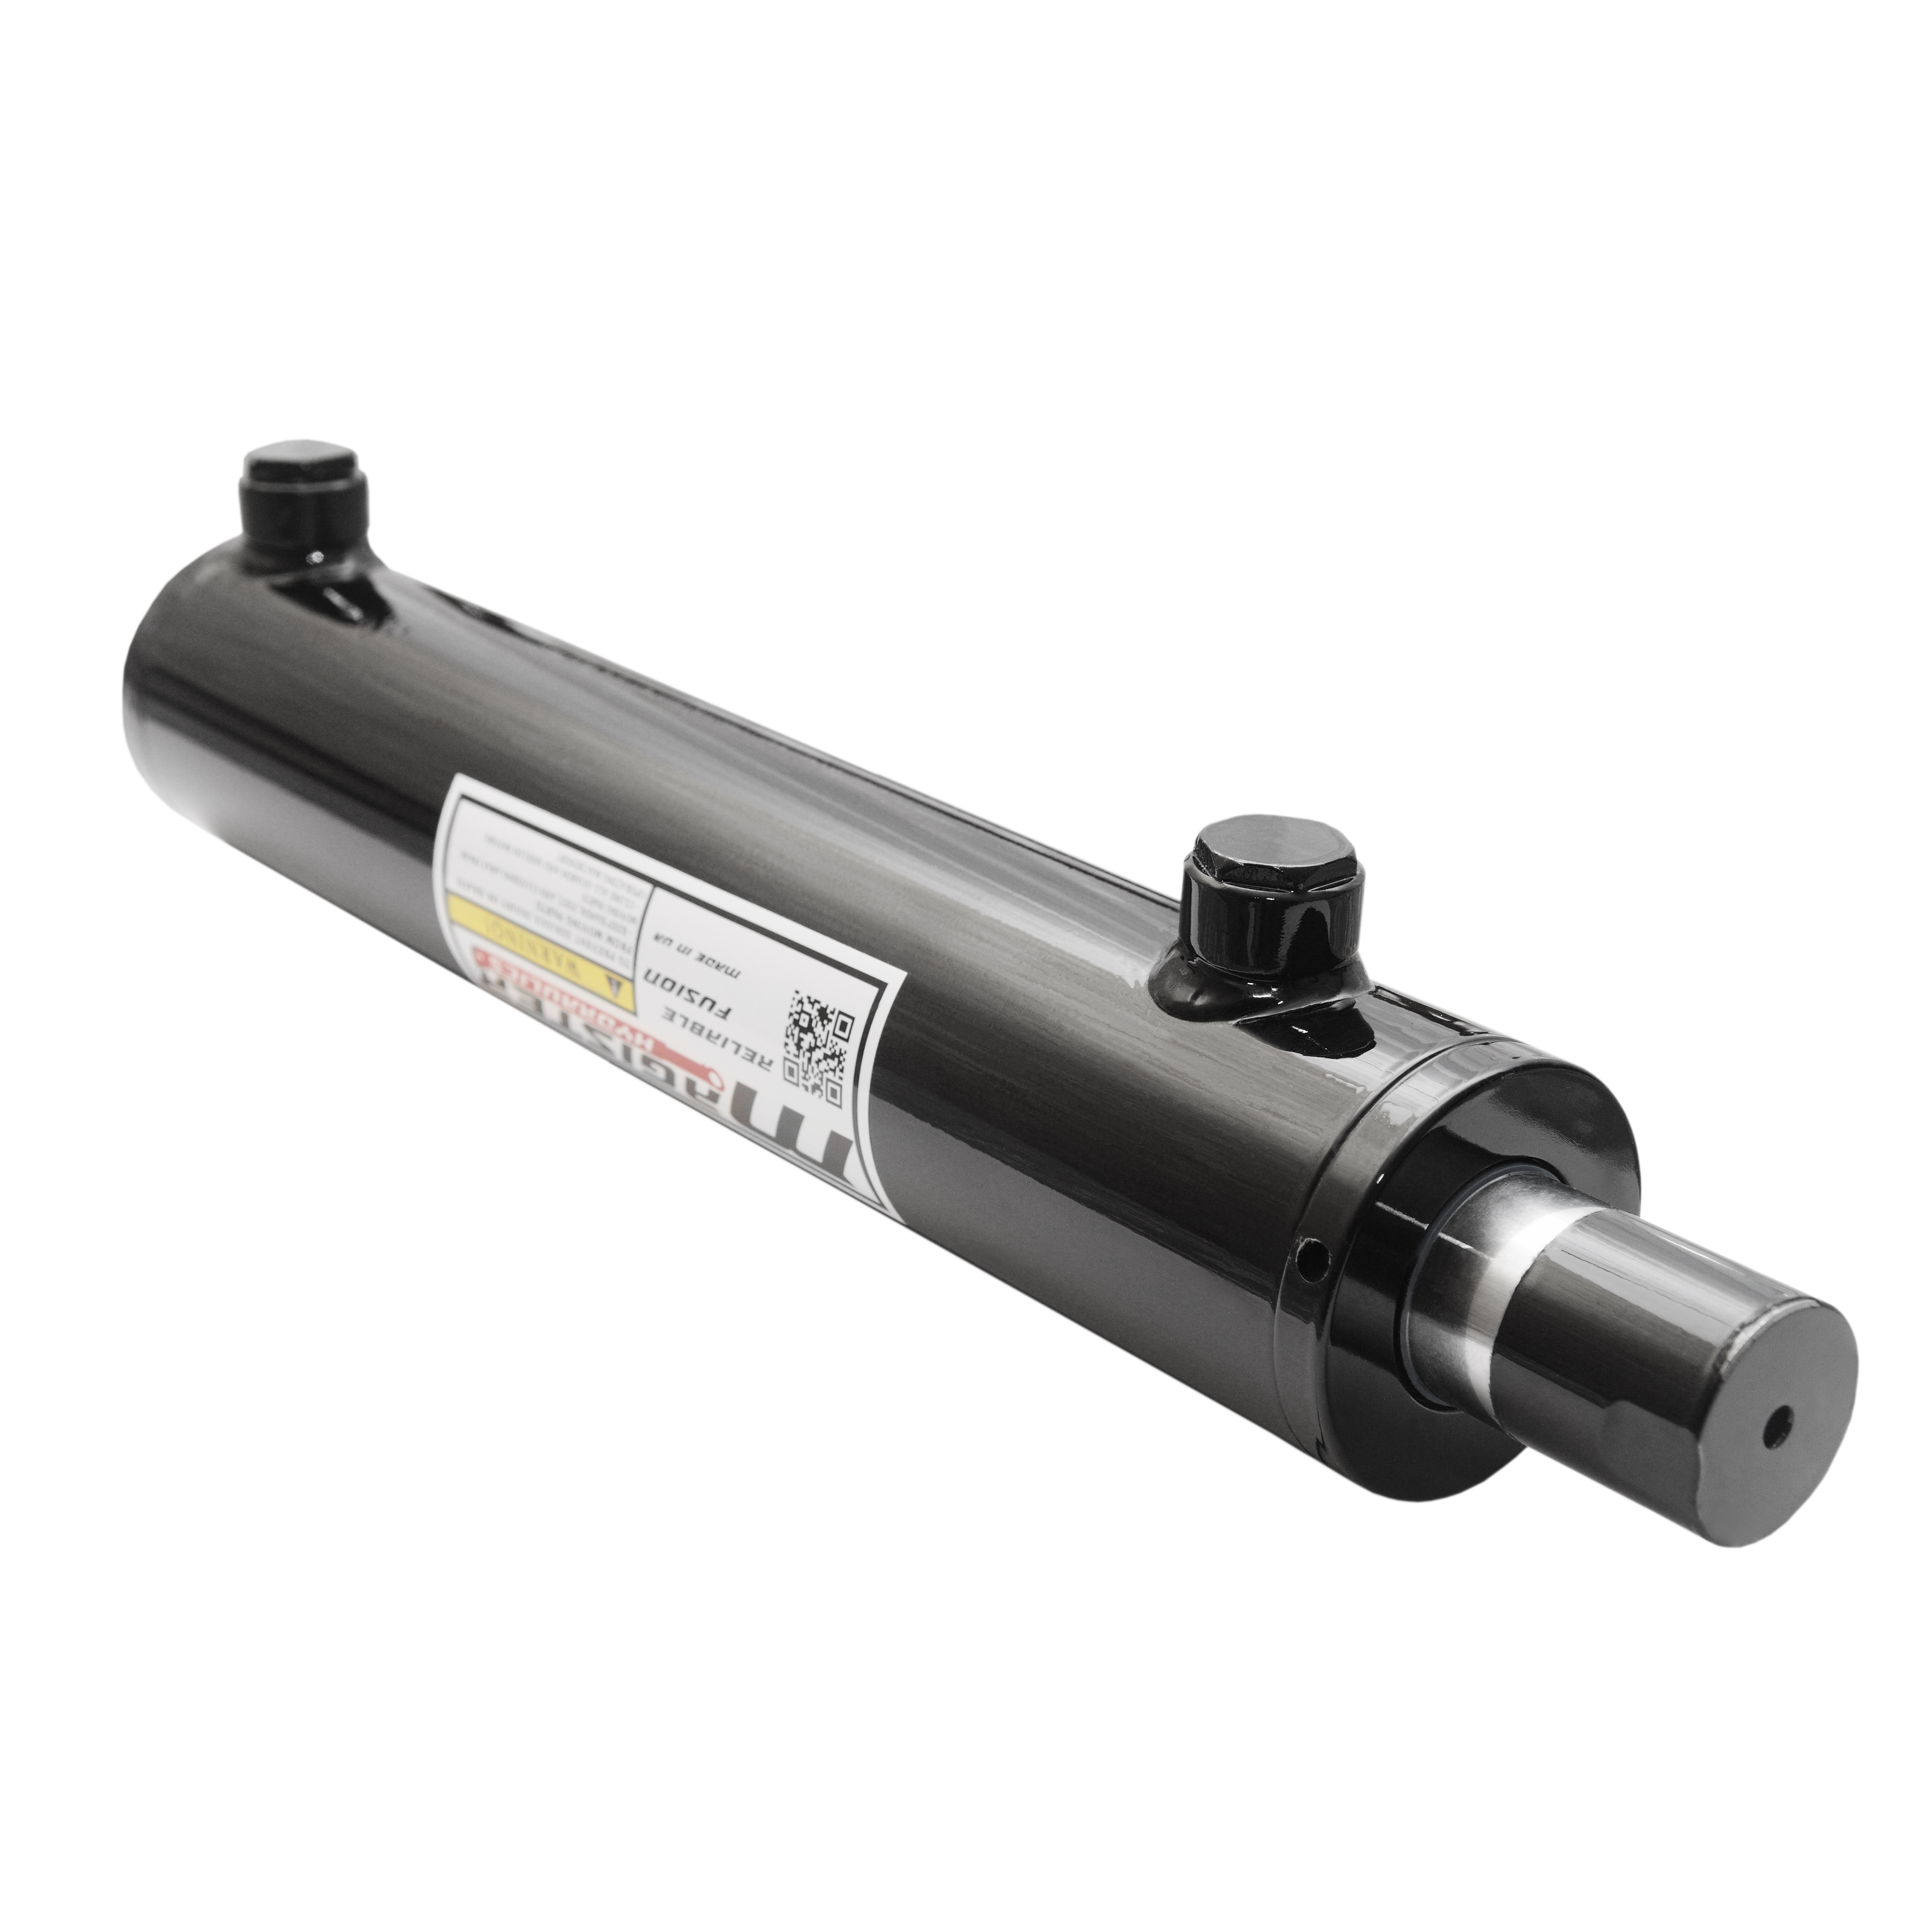 2 bore x 13 stroke hydraulic cylinder, welded universal double acting cylinder | Magister Hydraulics